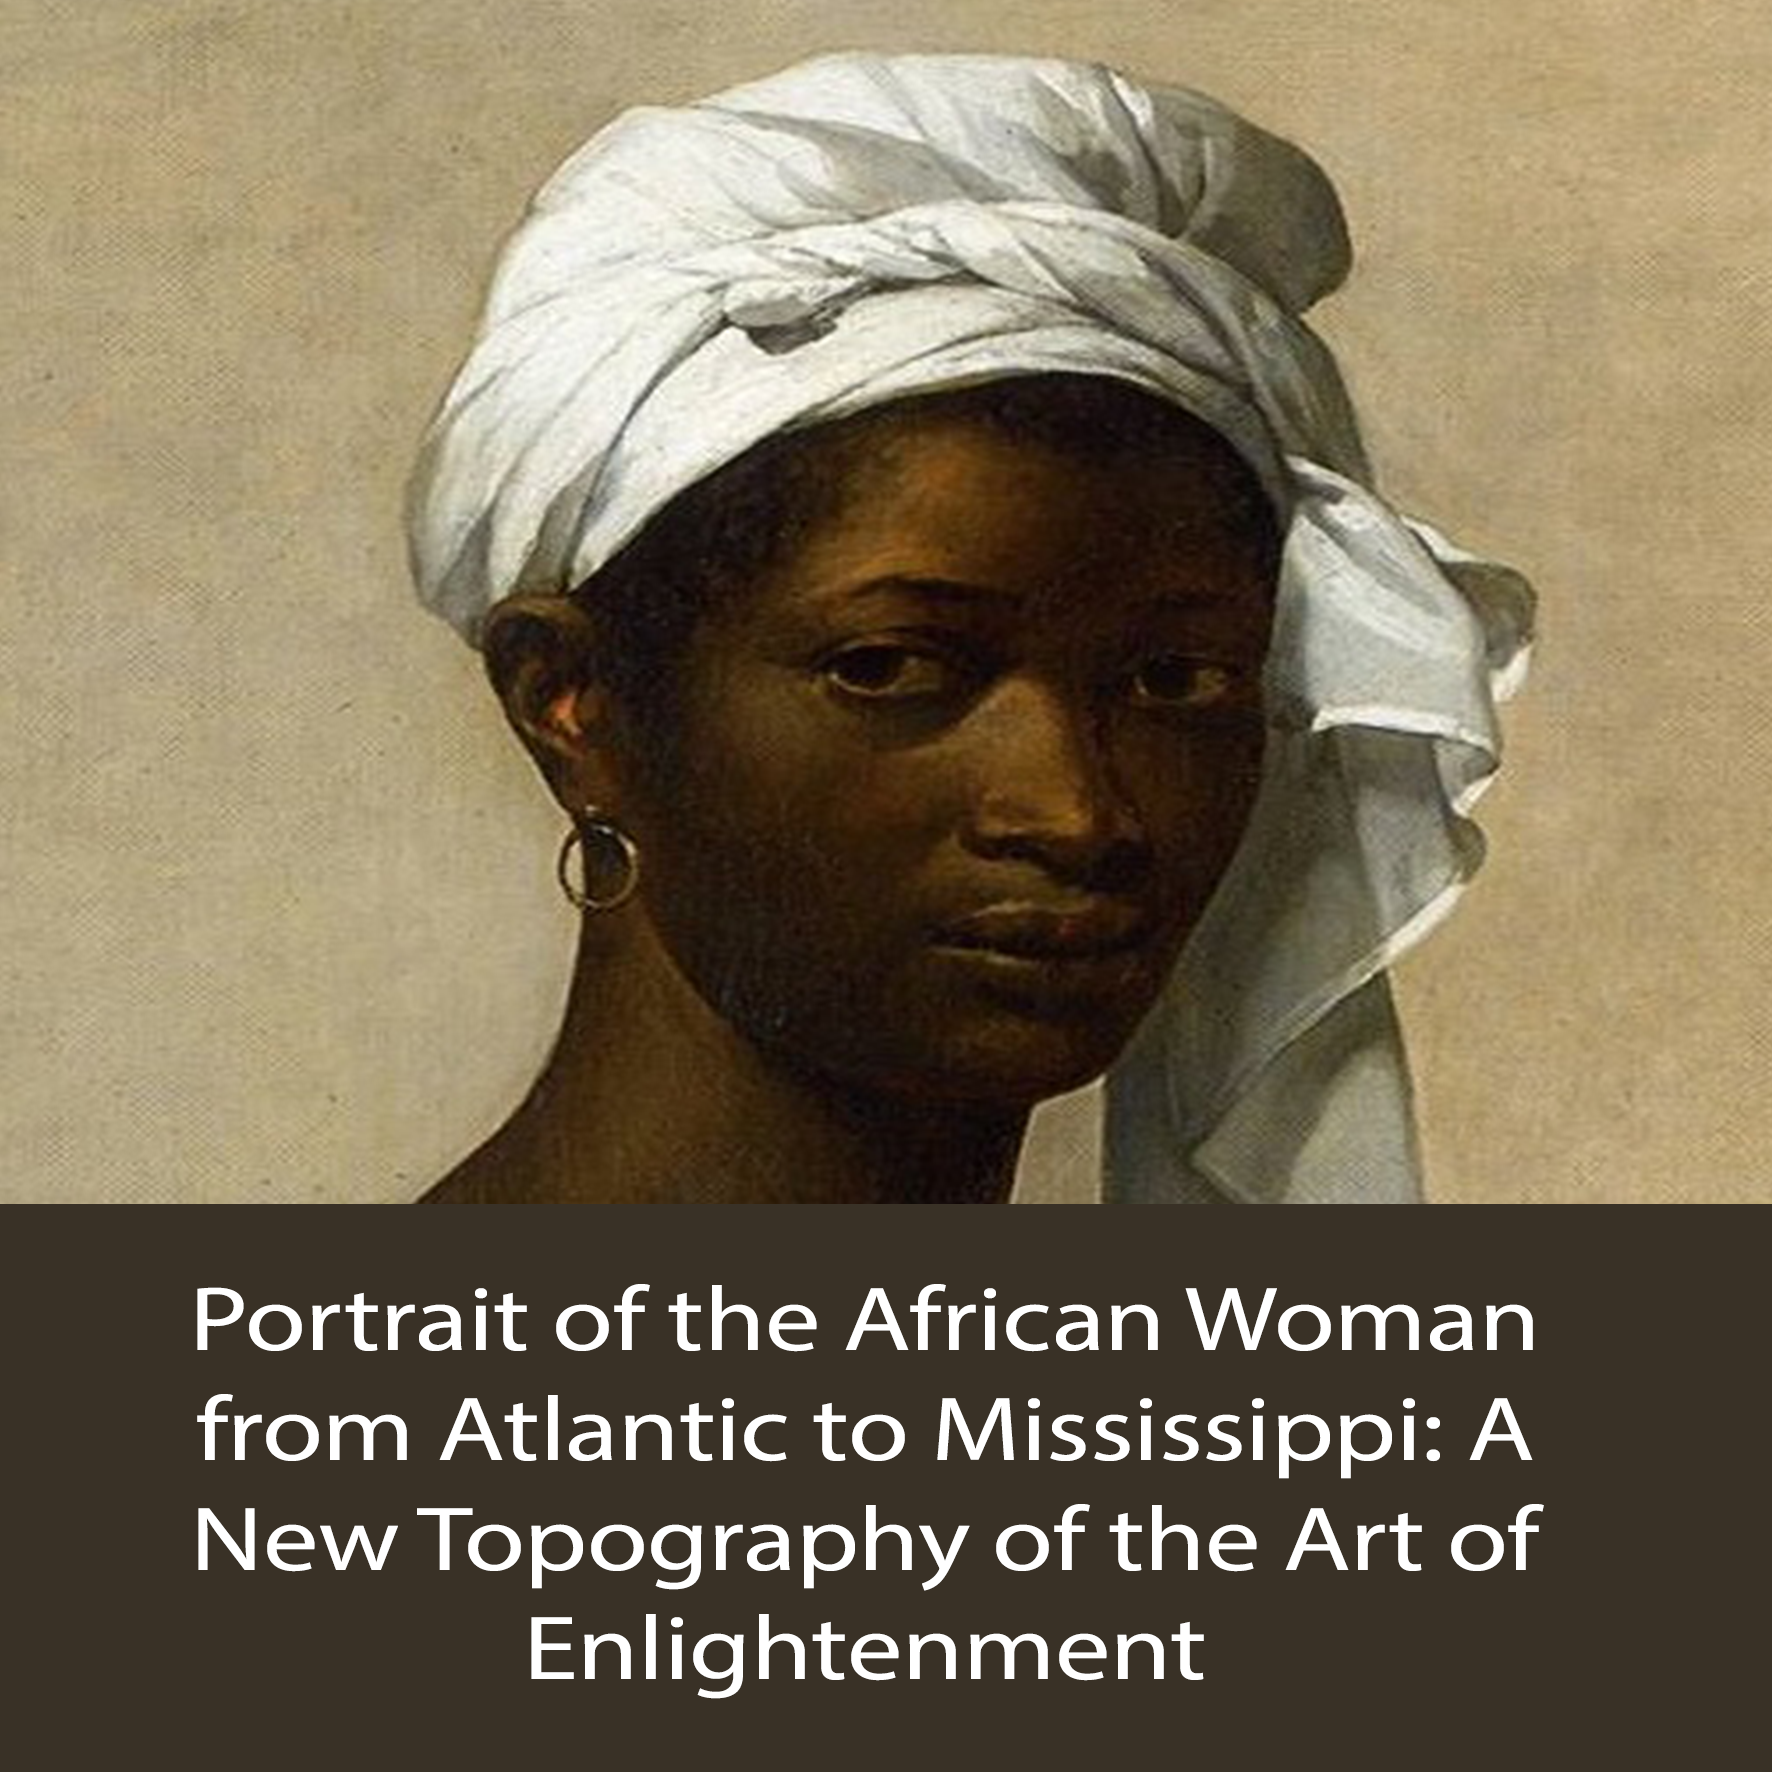 Portrait of the African Woman from Atlantic to Mississippi: A New Topography of the Art of Enlightenment